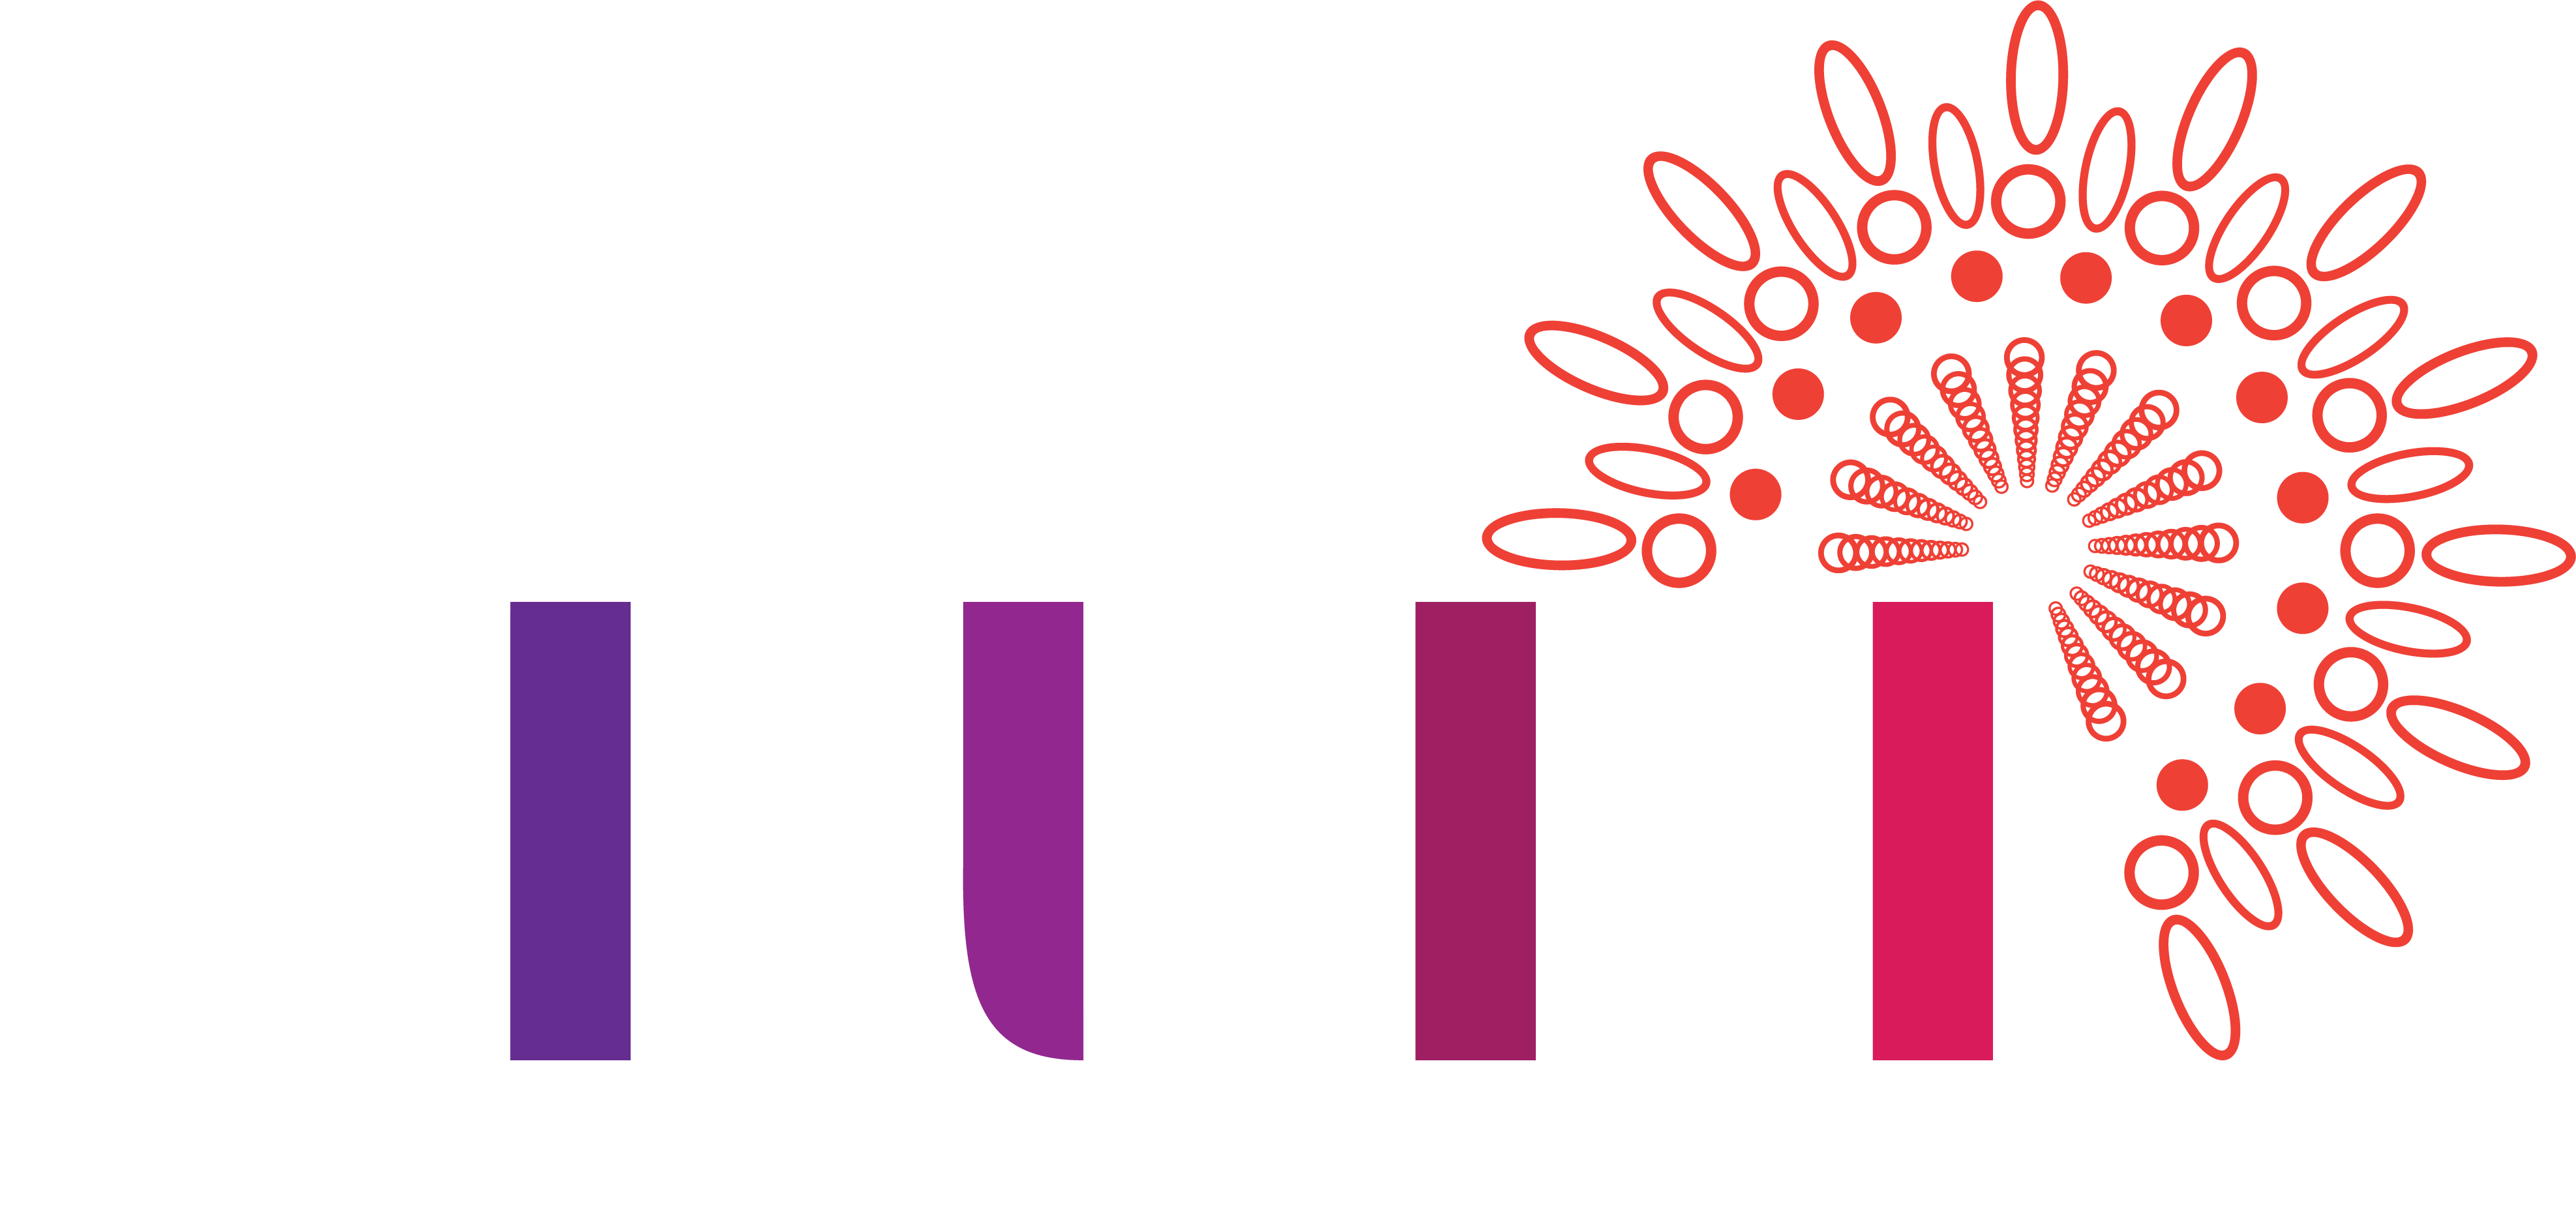 Image of Laura Kuhl's brand logo with white text.